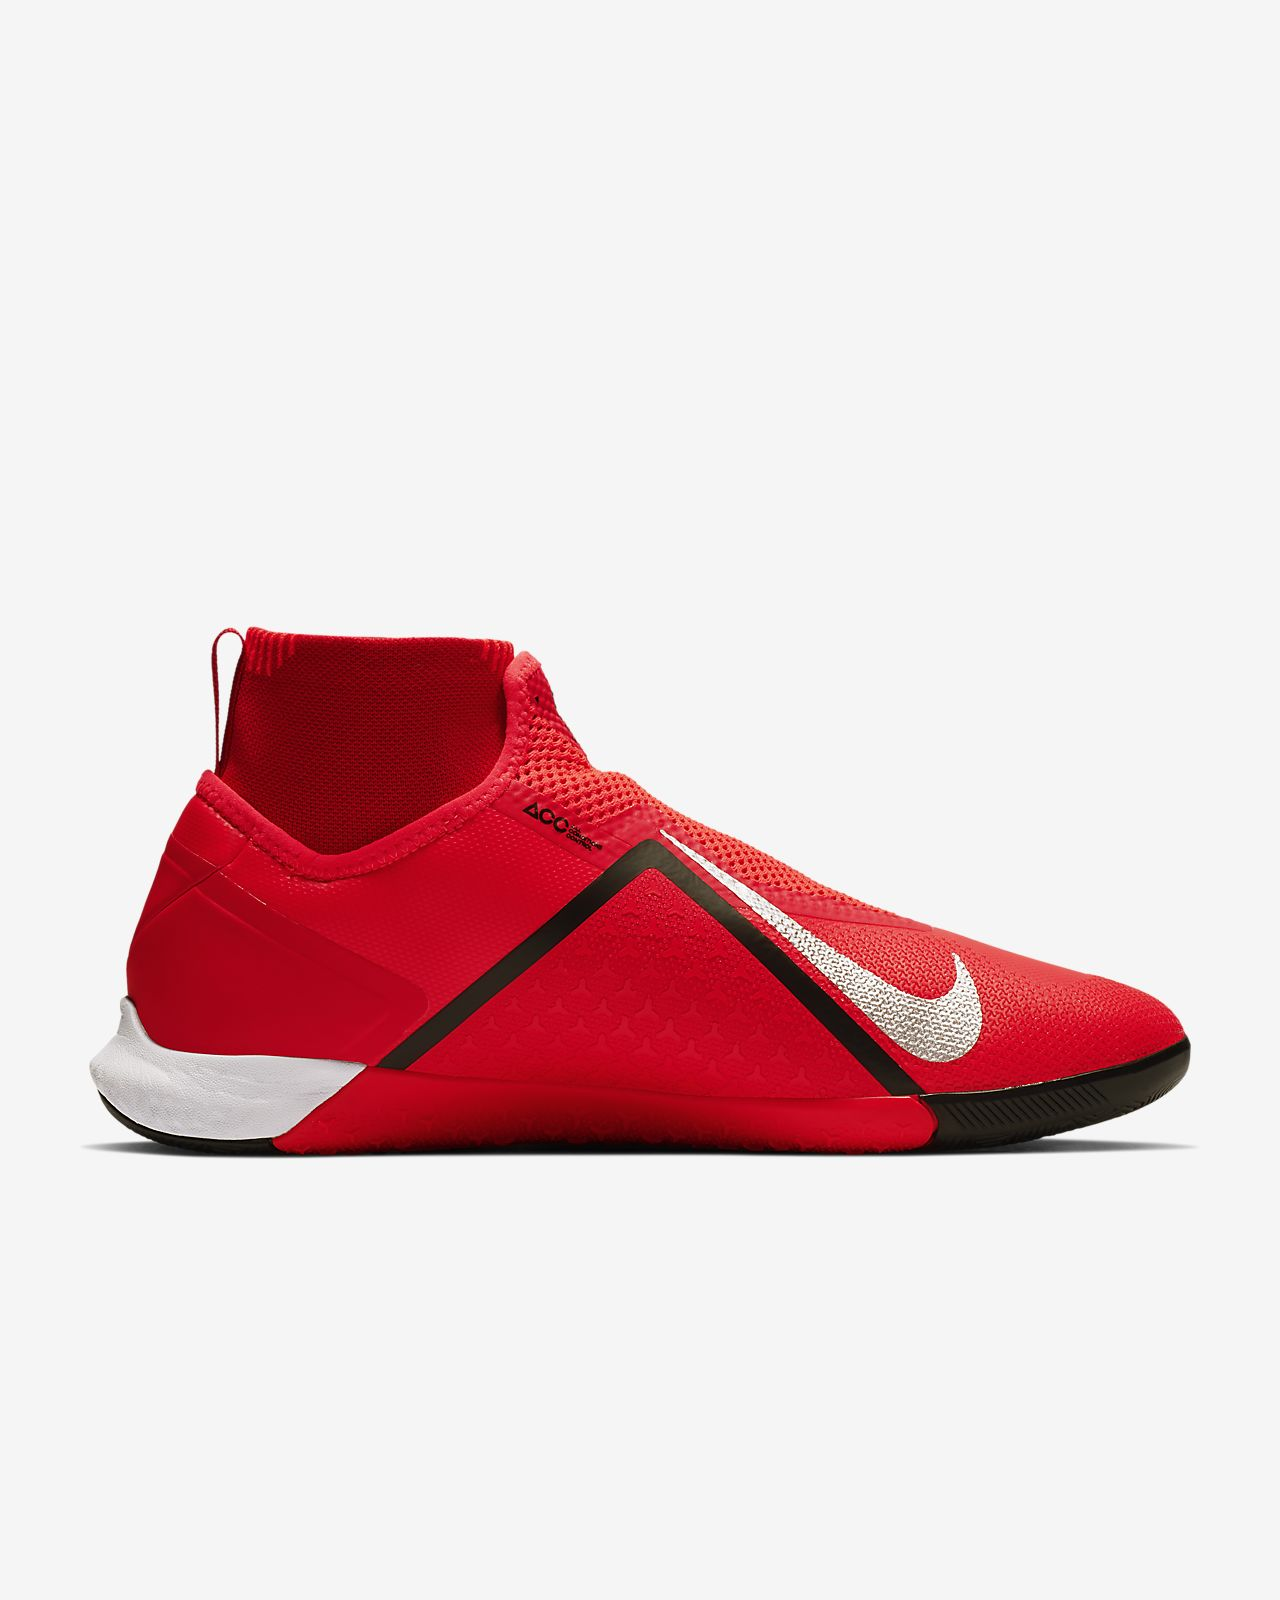 outlet store ae066 9eb64 ... Nike React PhantomVSN Pro Dynamic Fit Game Over IC-fodboldstøvle til  indendørs